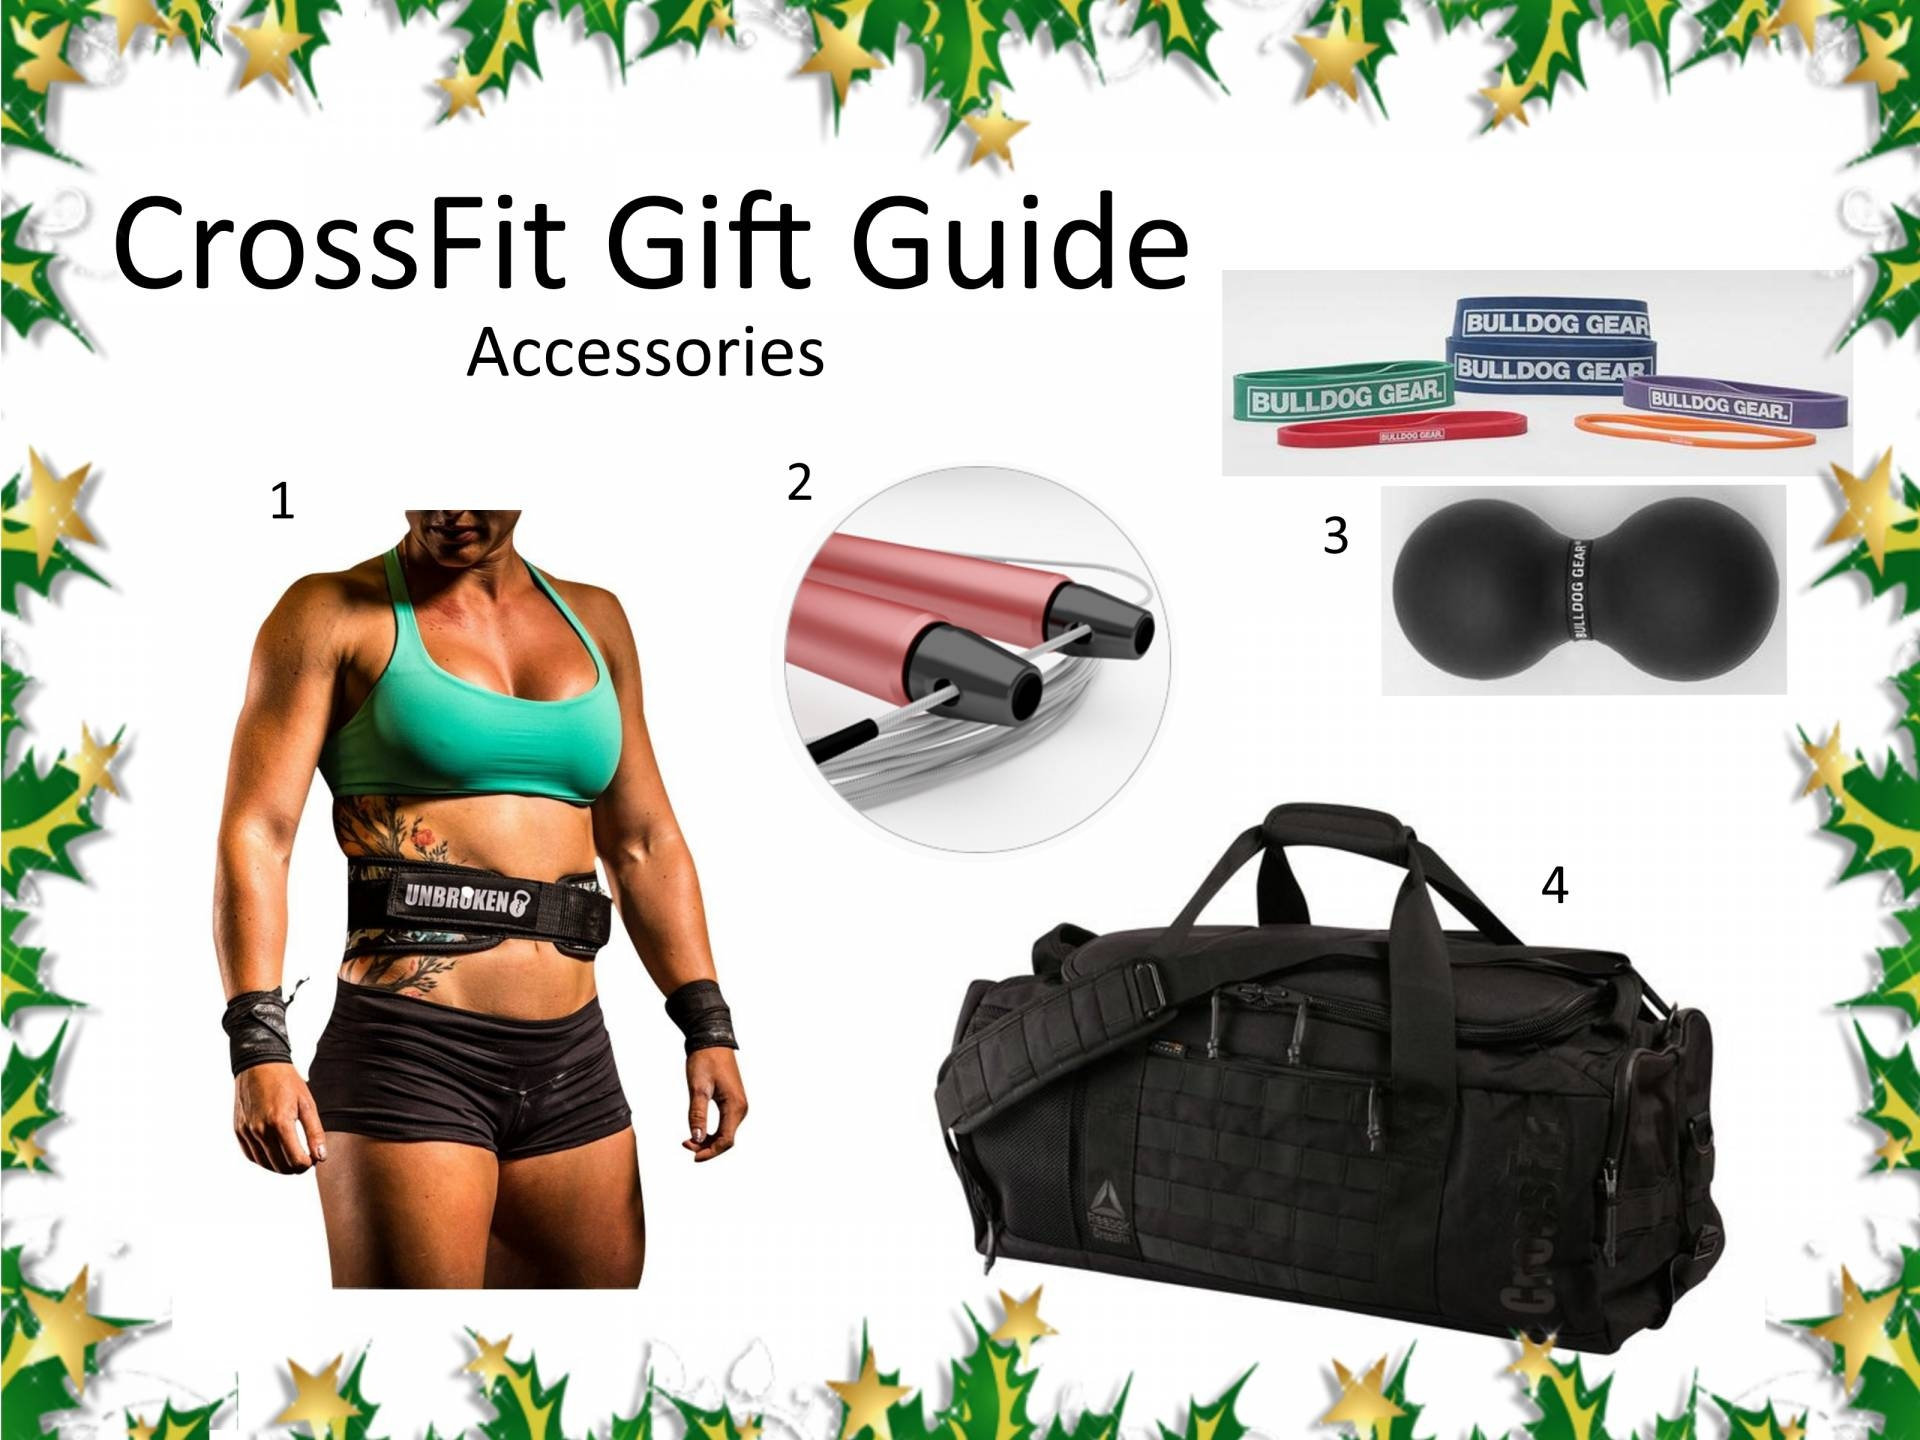 crossfit-gift-guide-accessories